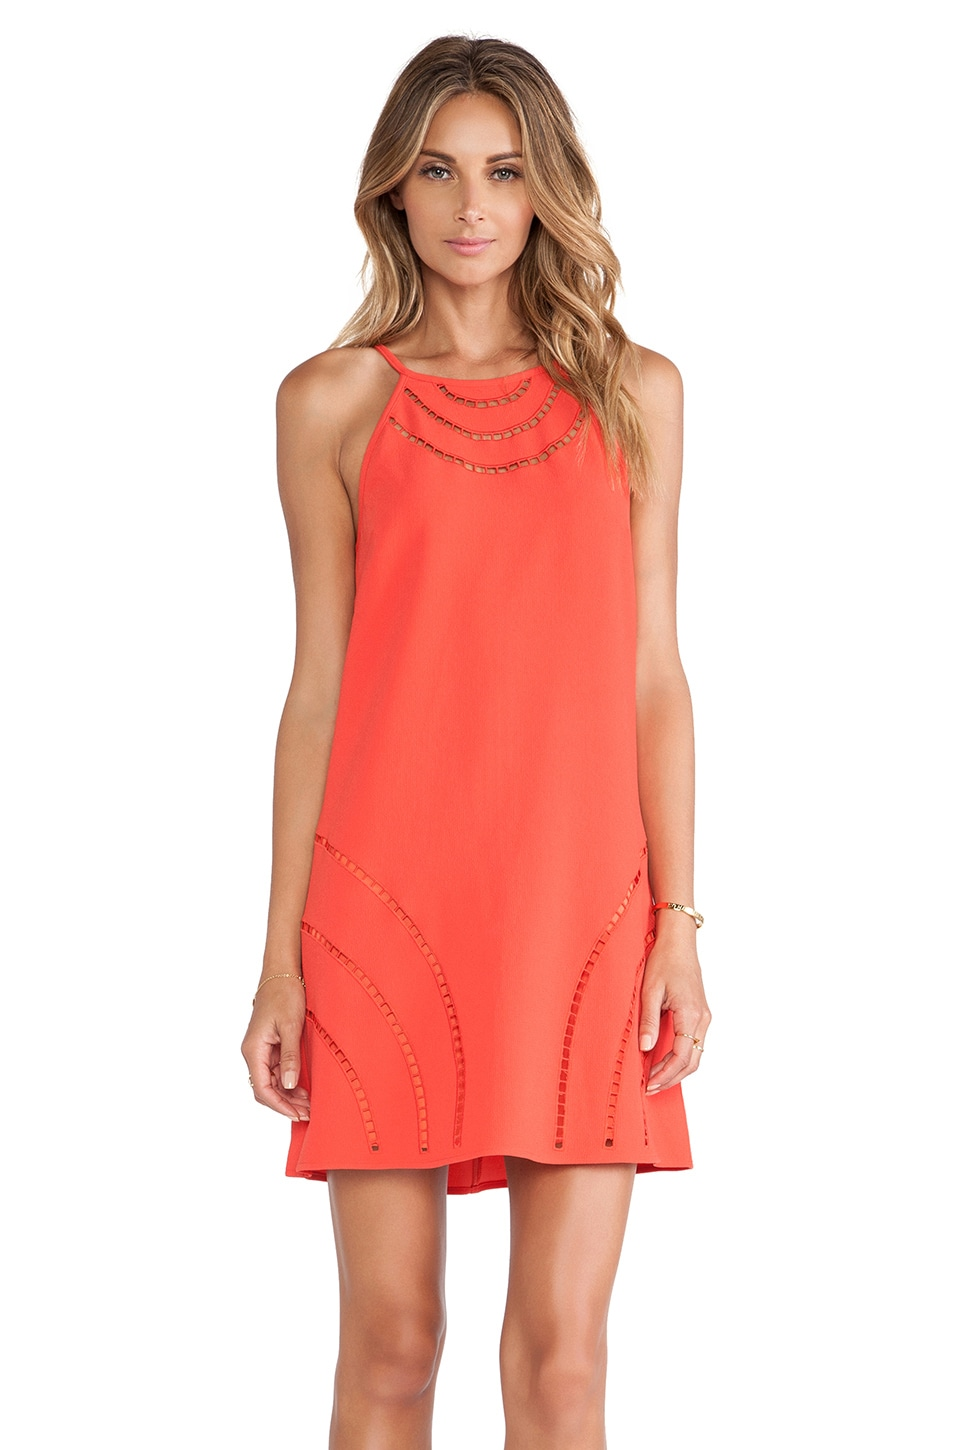 Trina Turk Morena Dress in Cayenne